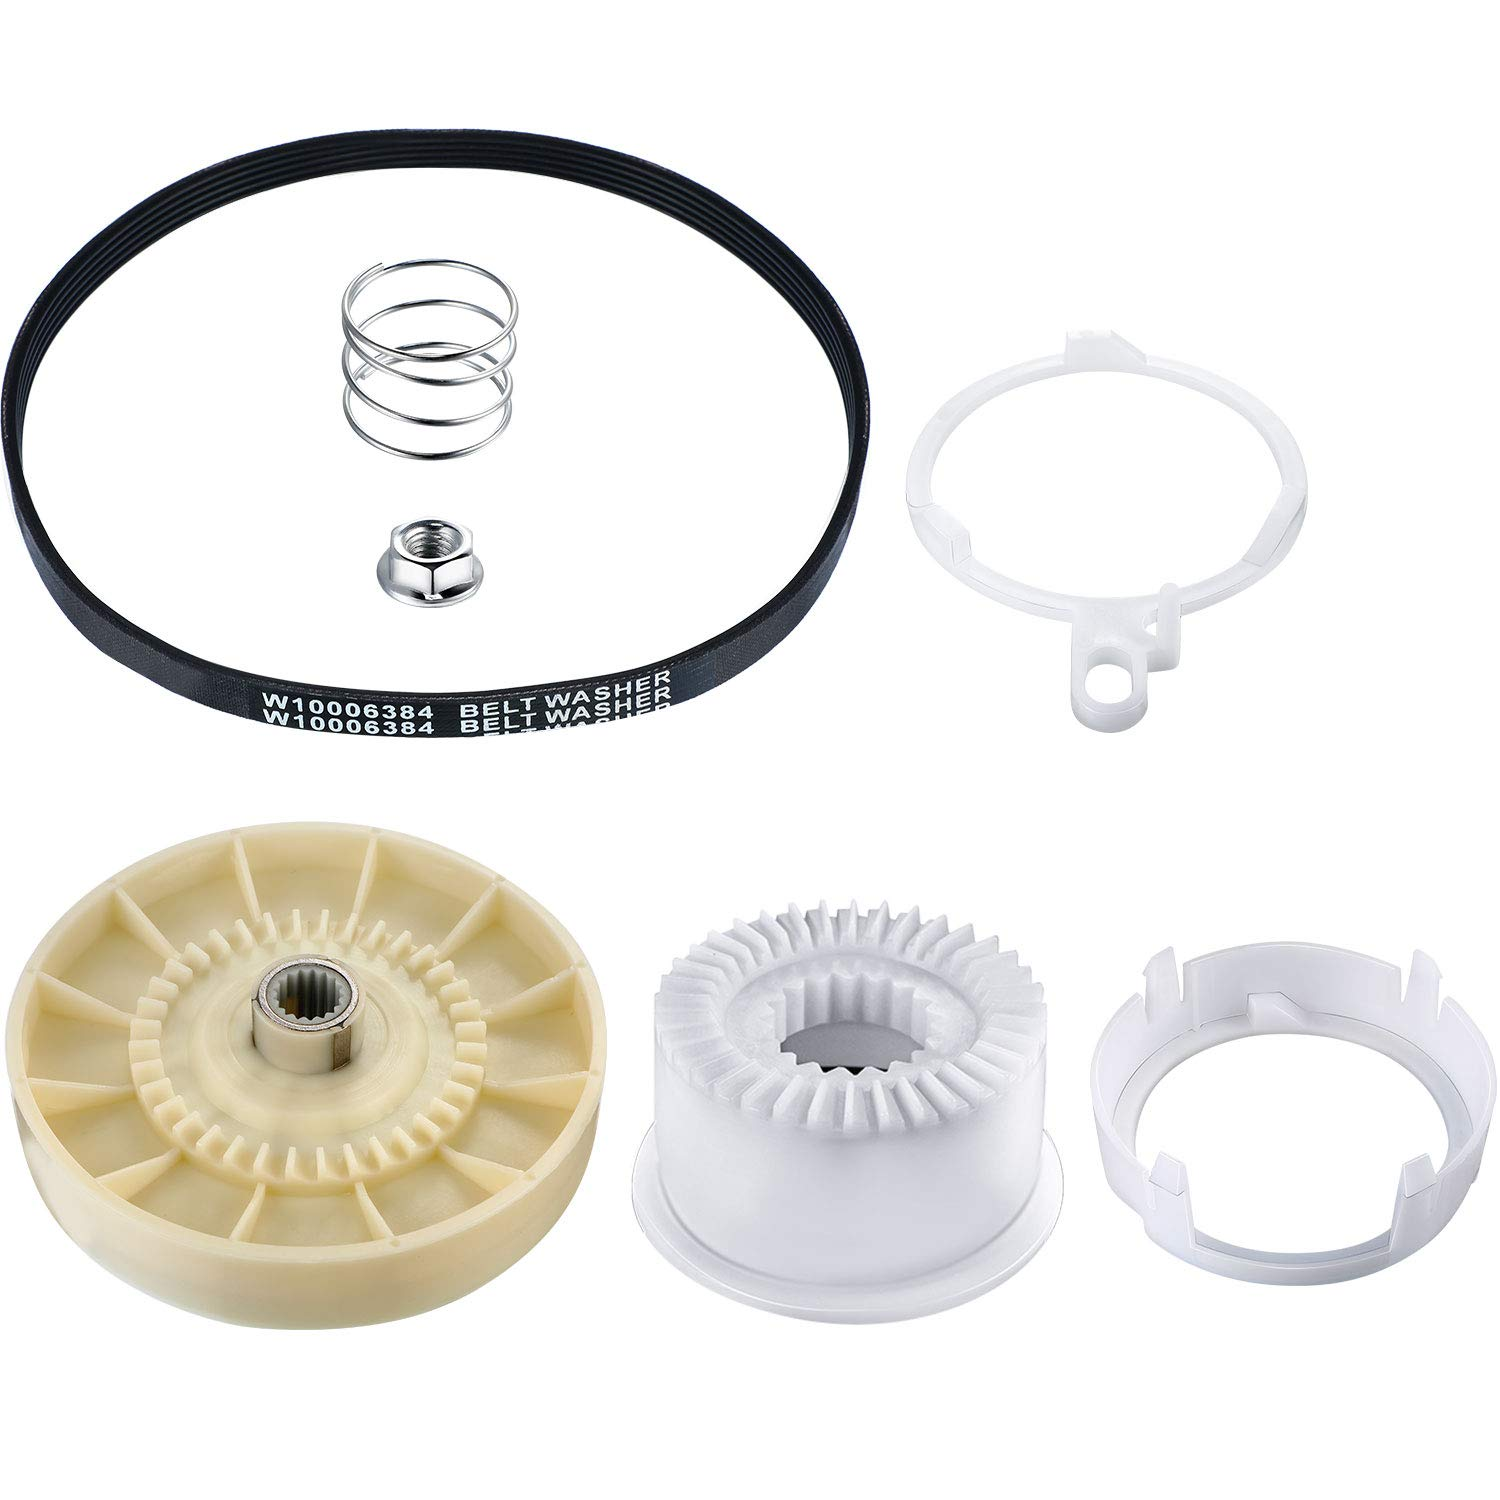 2 Pieces Washer Replacements Including 1 Piece W10721967 Washer Pulley Clutch Kit and 1 Piece W10006384 Washing Machine Drive Belt 61lQjDHAQZL